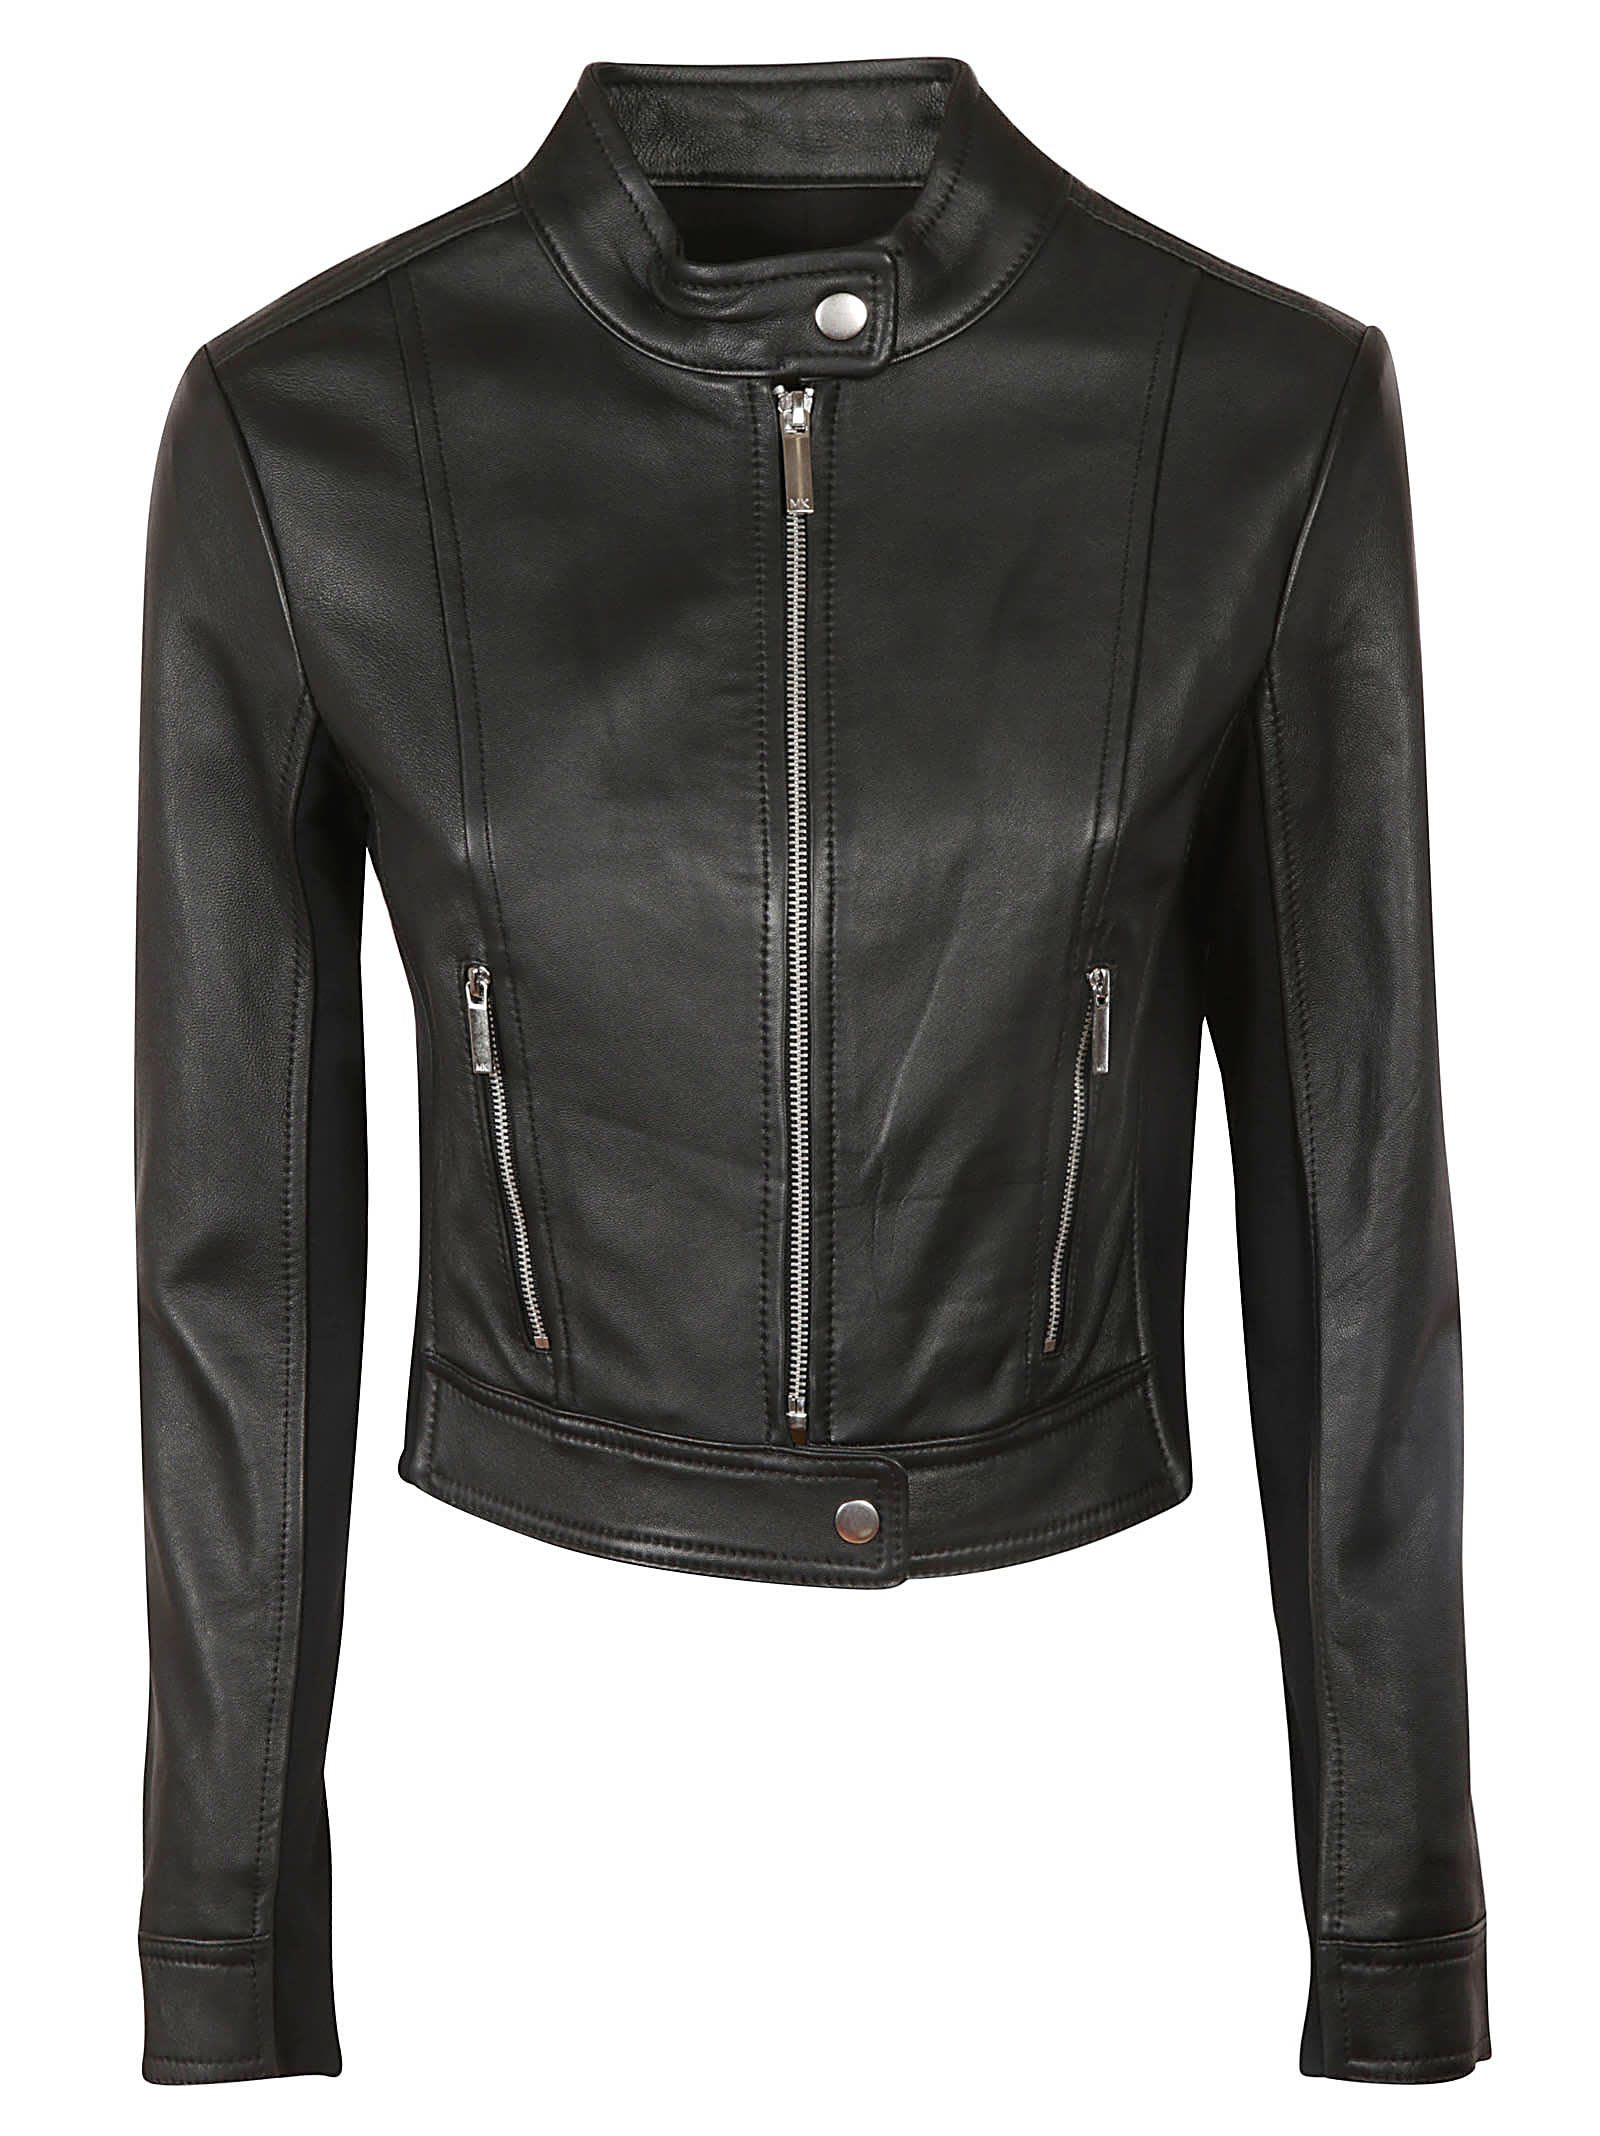 Michael Kors Zipped Biker Jacket